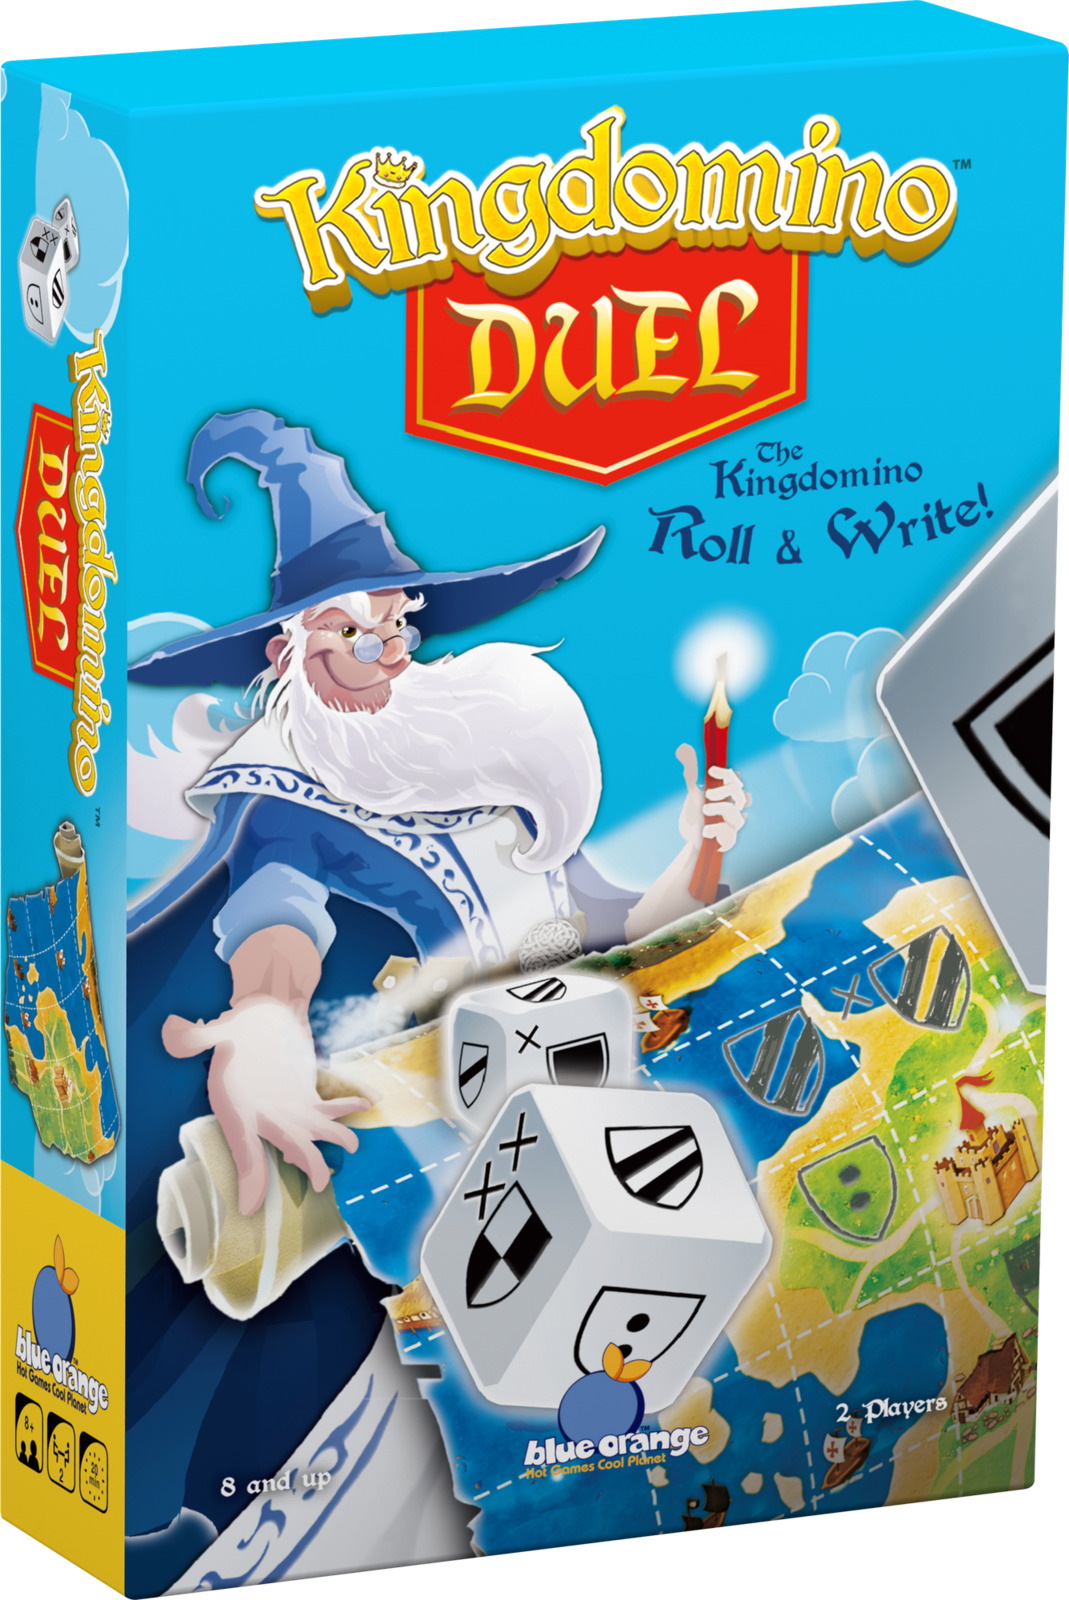 Kingdomino: Duel - Dice Game image